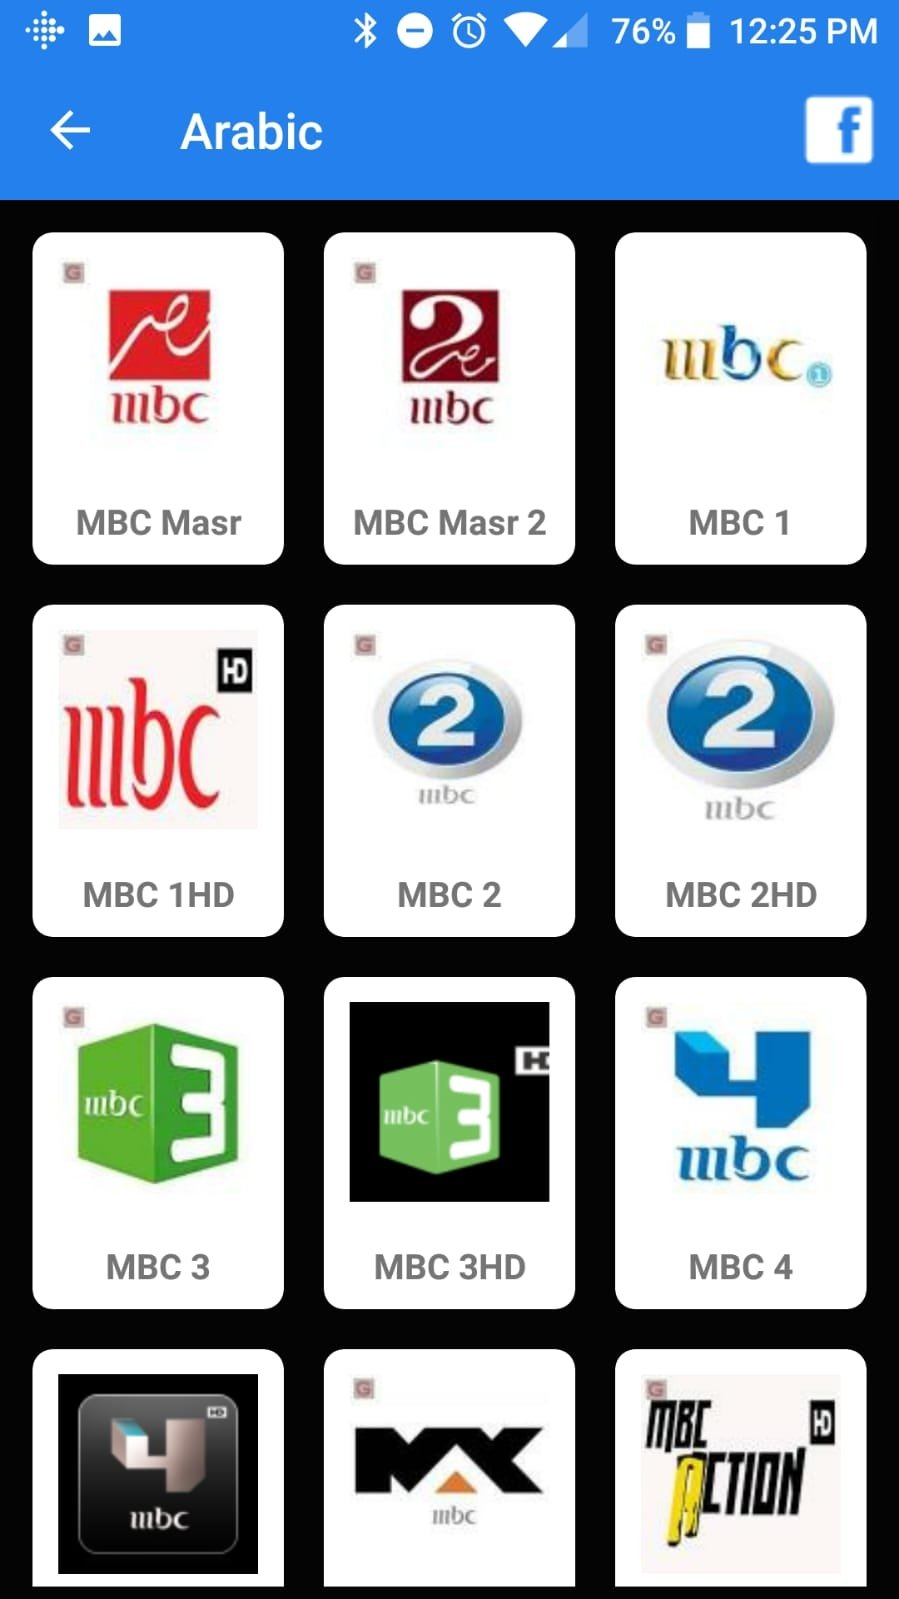 MBC2 TÉLÉCHARGER VIDEO